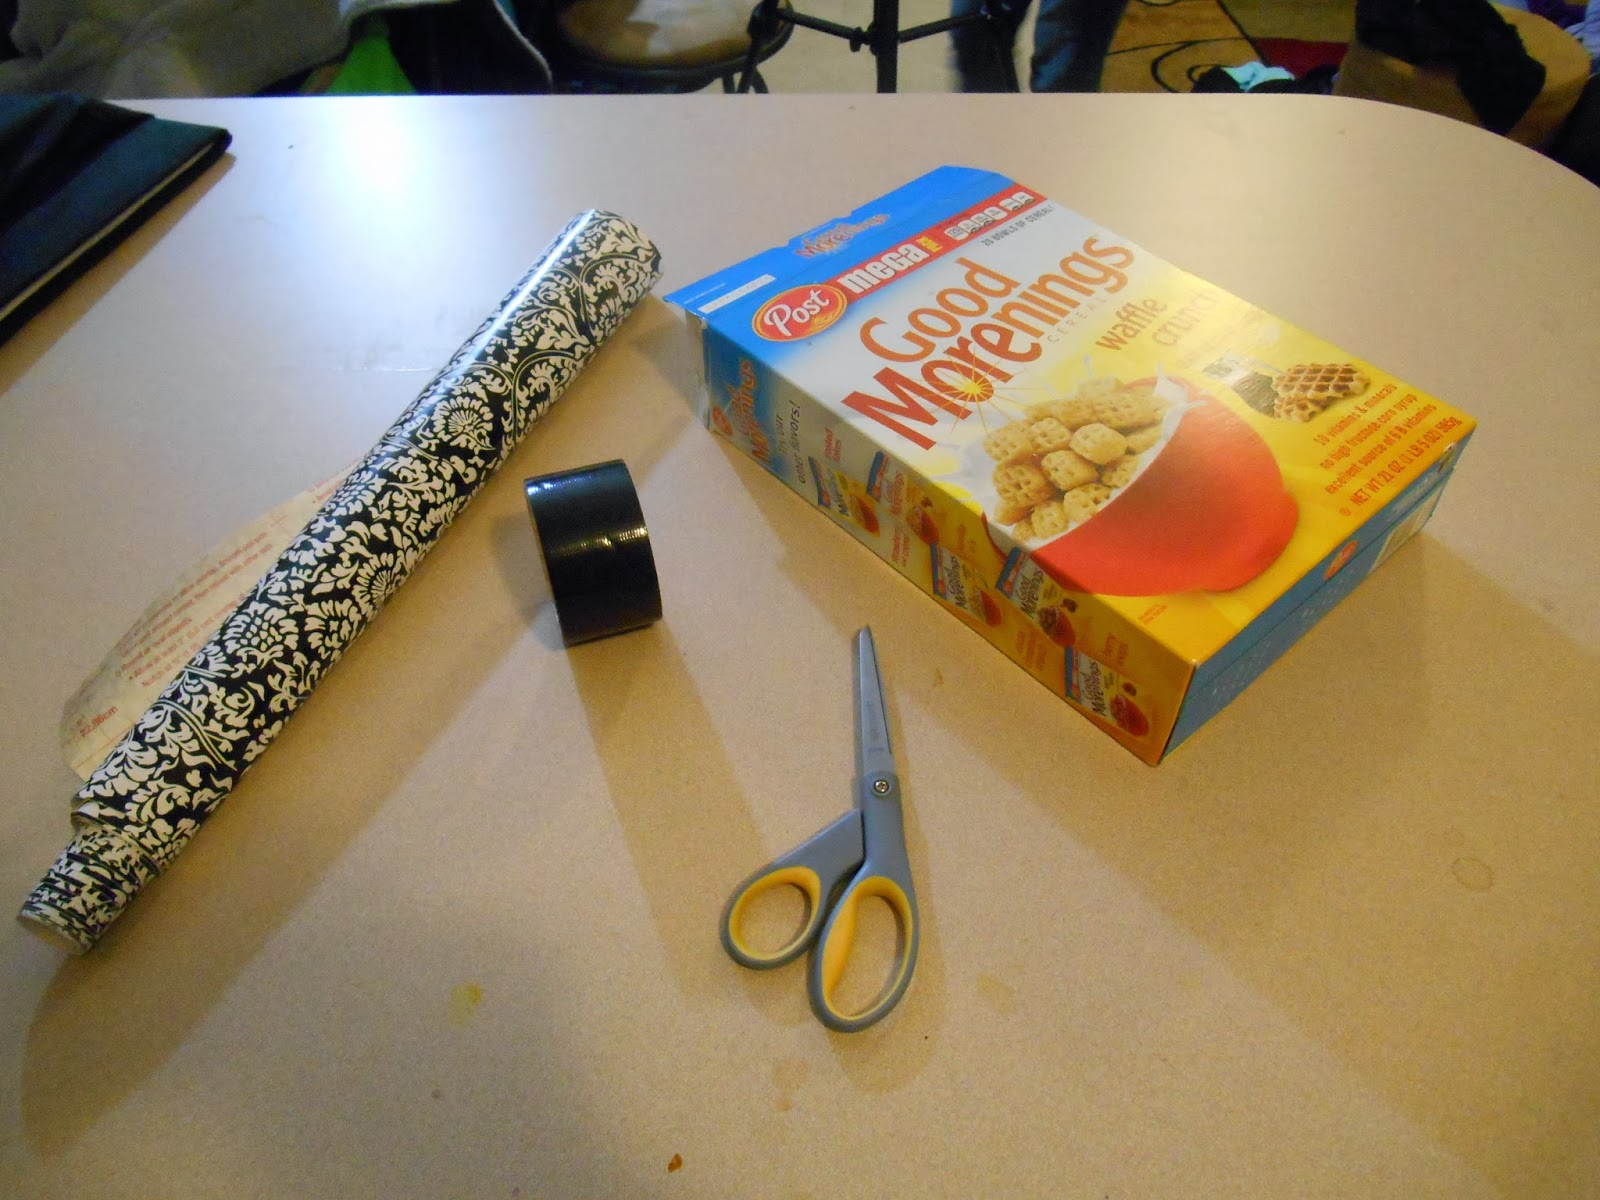 Kitchen Diorama Made Of Cereal Box: DIY Cereal Box Kitchen Organizer